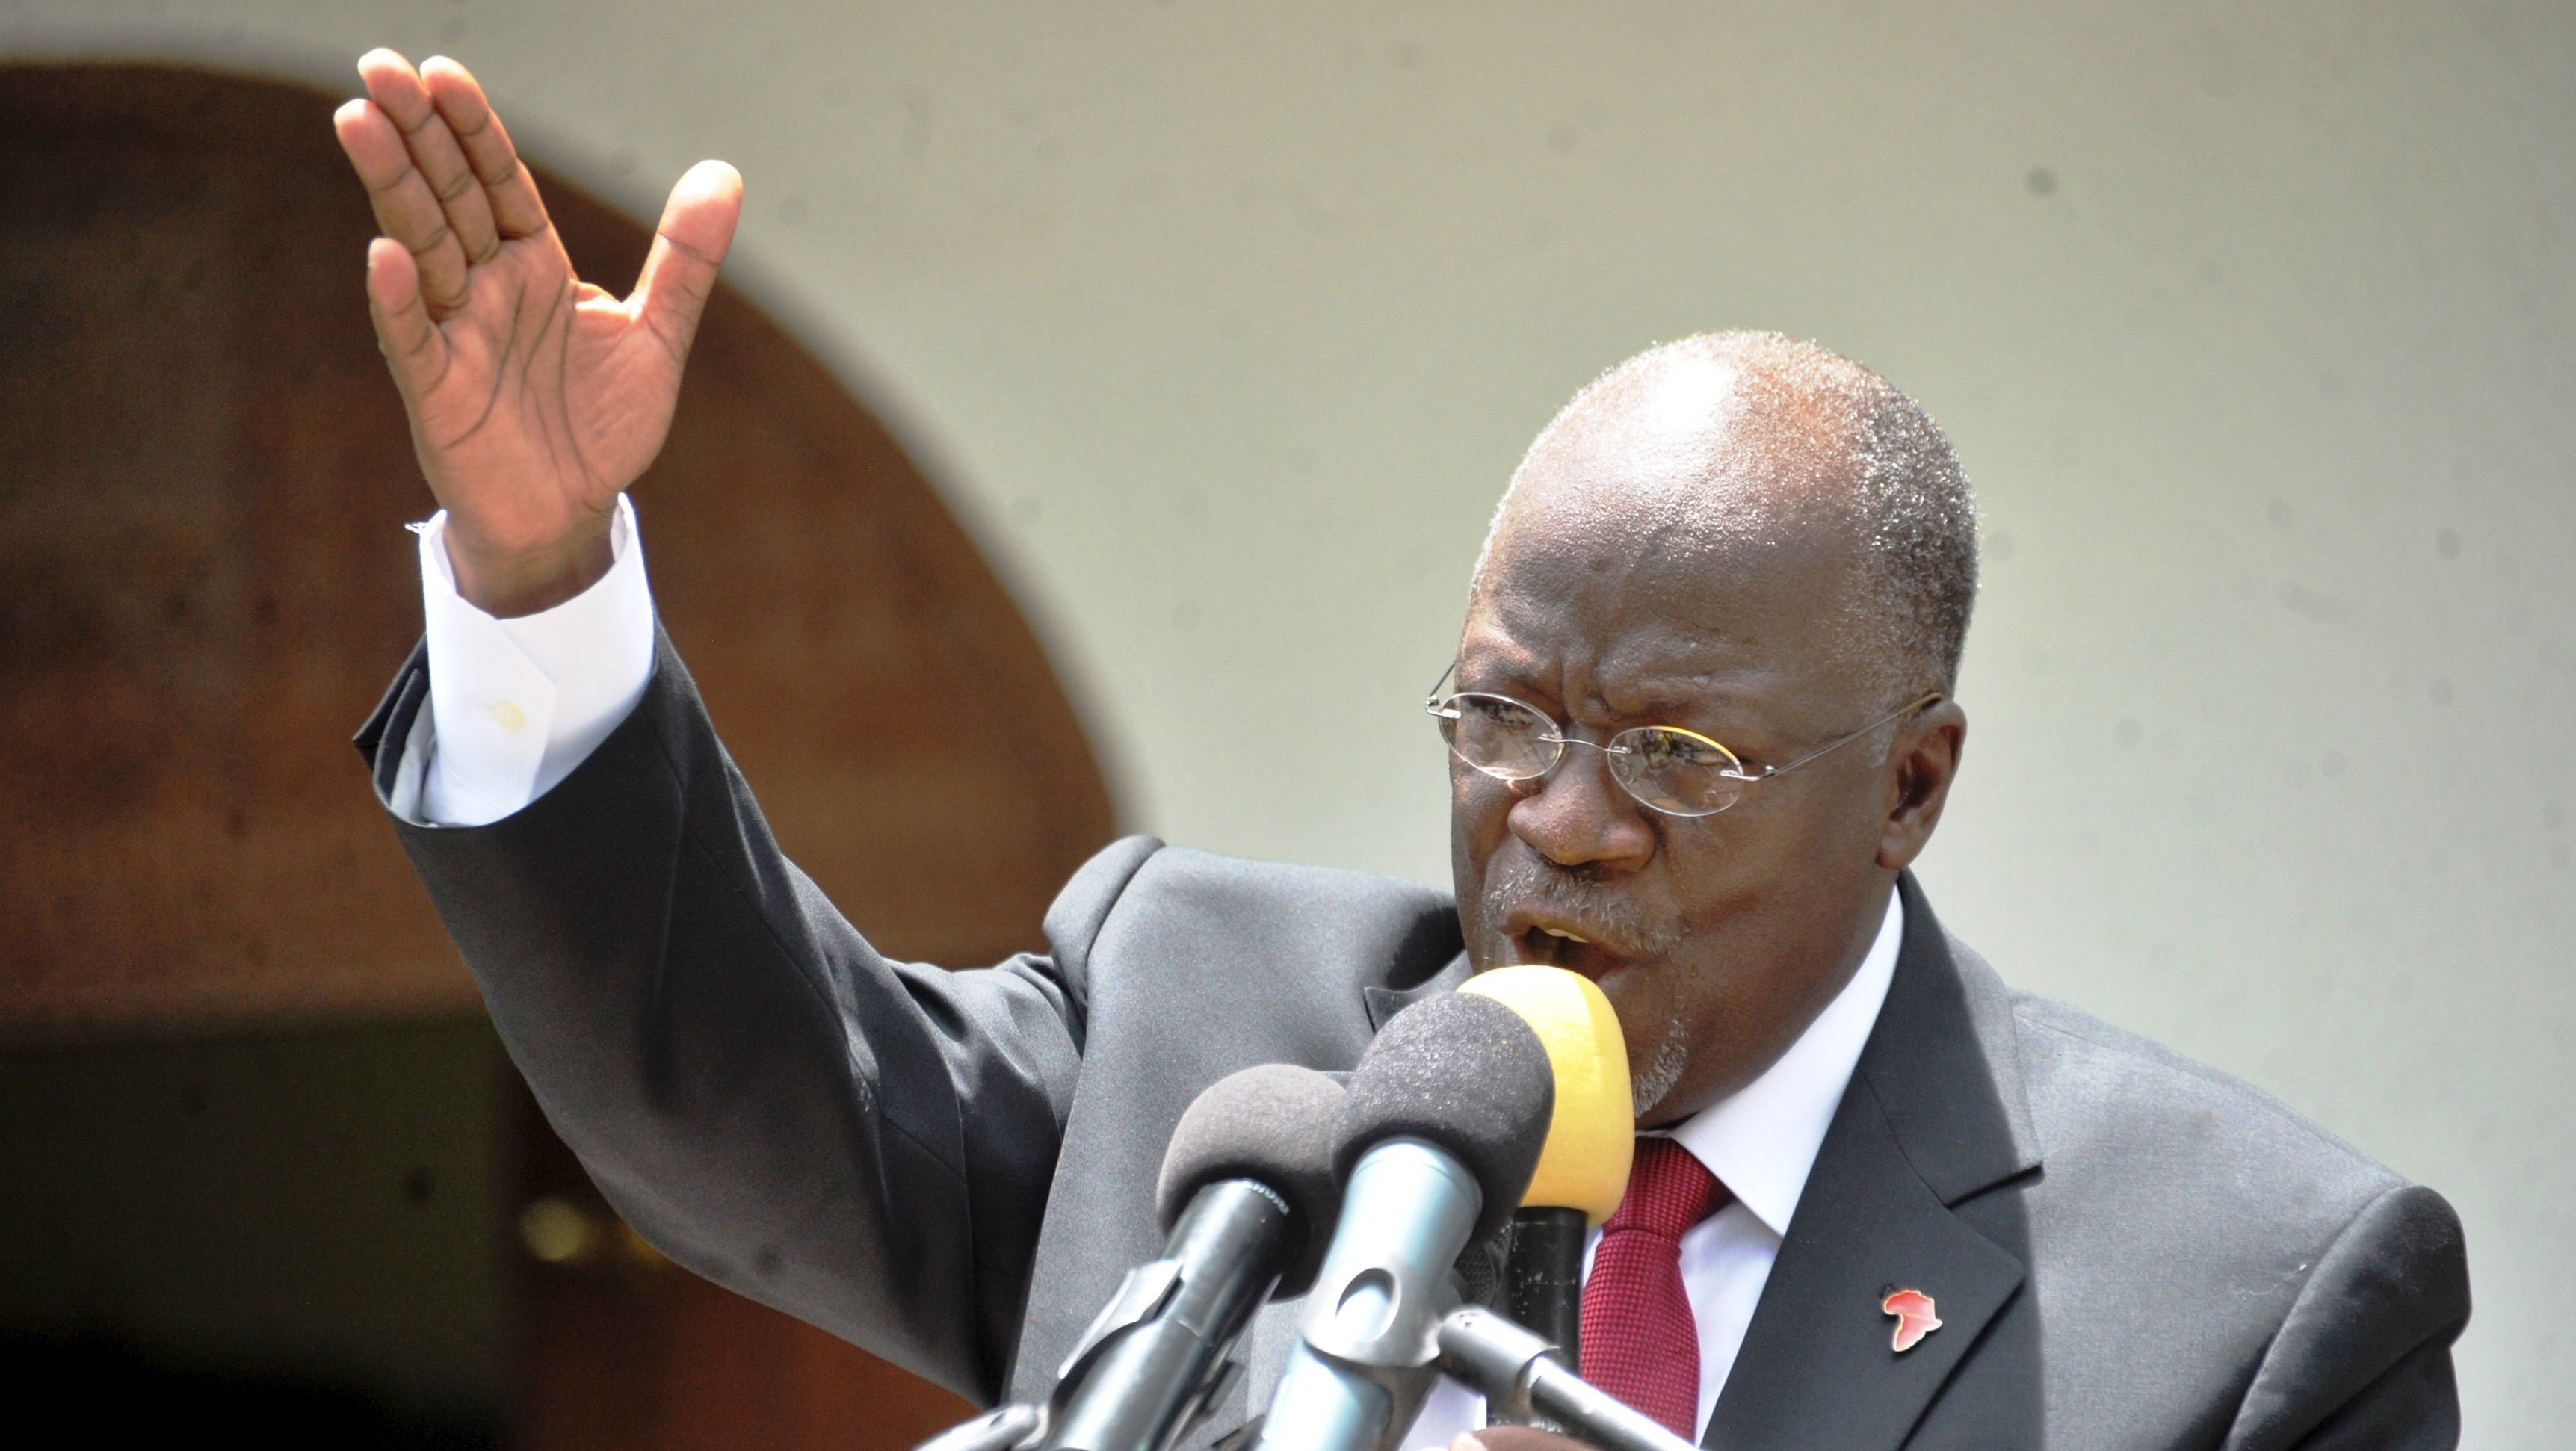 Tanzania's President elect John Pombe Magufuli addresses members of the ruling Chama Cha Mapinduzi Party (CCM) at the party's sub-head office on Lumumba road in Dar es Salaam, October 30, 2015. Tanzania's ruling party candidate, John Magufuli, was declared winner on Thursday of a presidential election, after the national electoral body dismissed opposition complaints about the process and a demand for a recount. The election has been the most hotly contested race in the more than half a century of rule by the Chama Cha Mapinduzi Party, which fielded Magufuli, 56, a minister for public works.